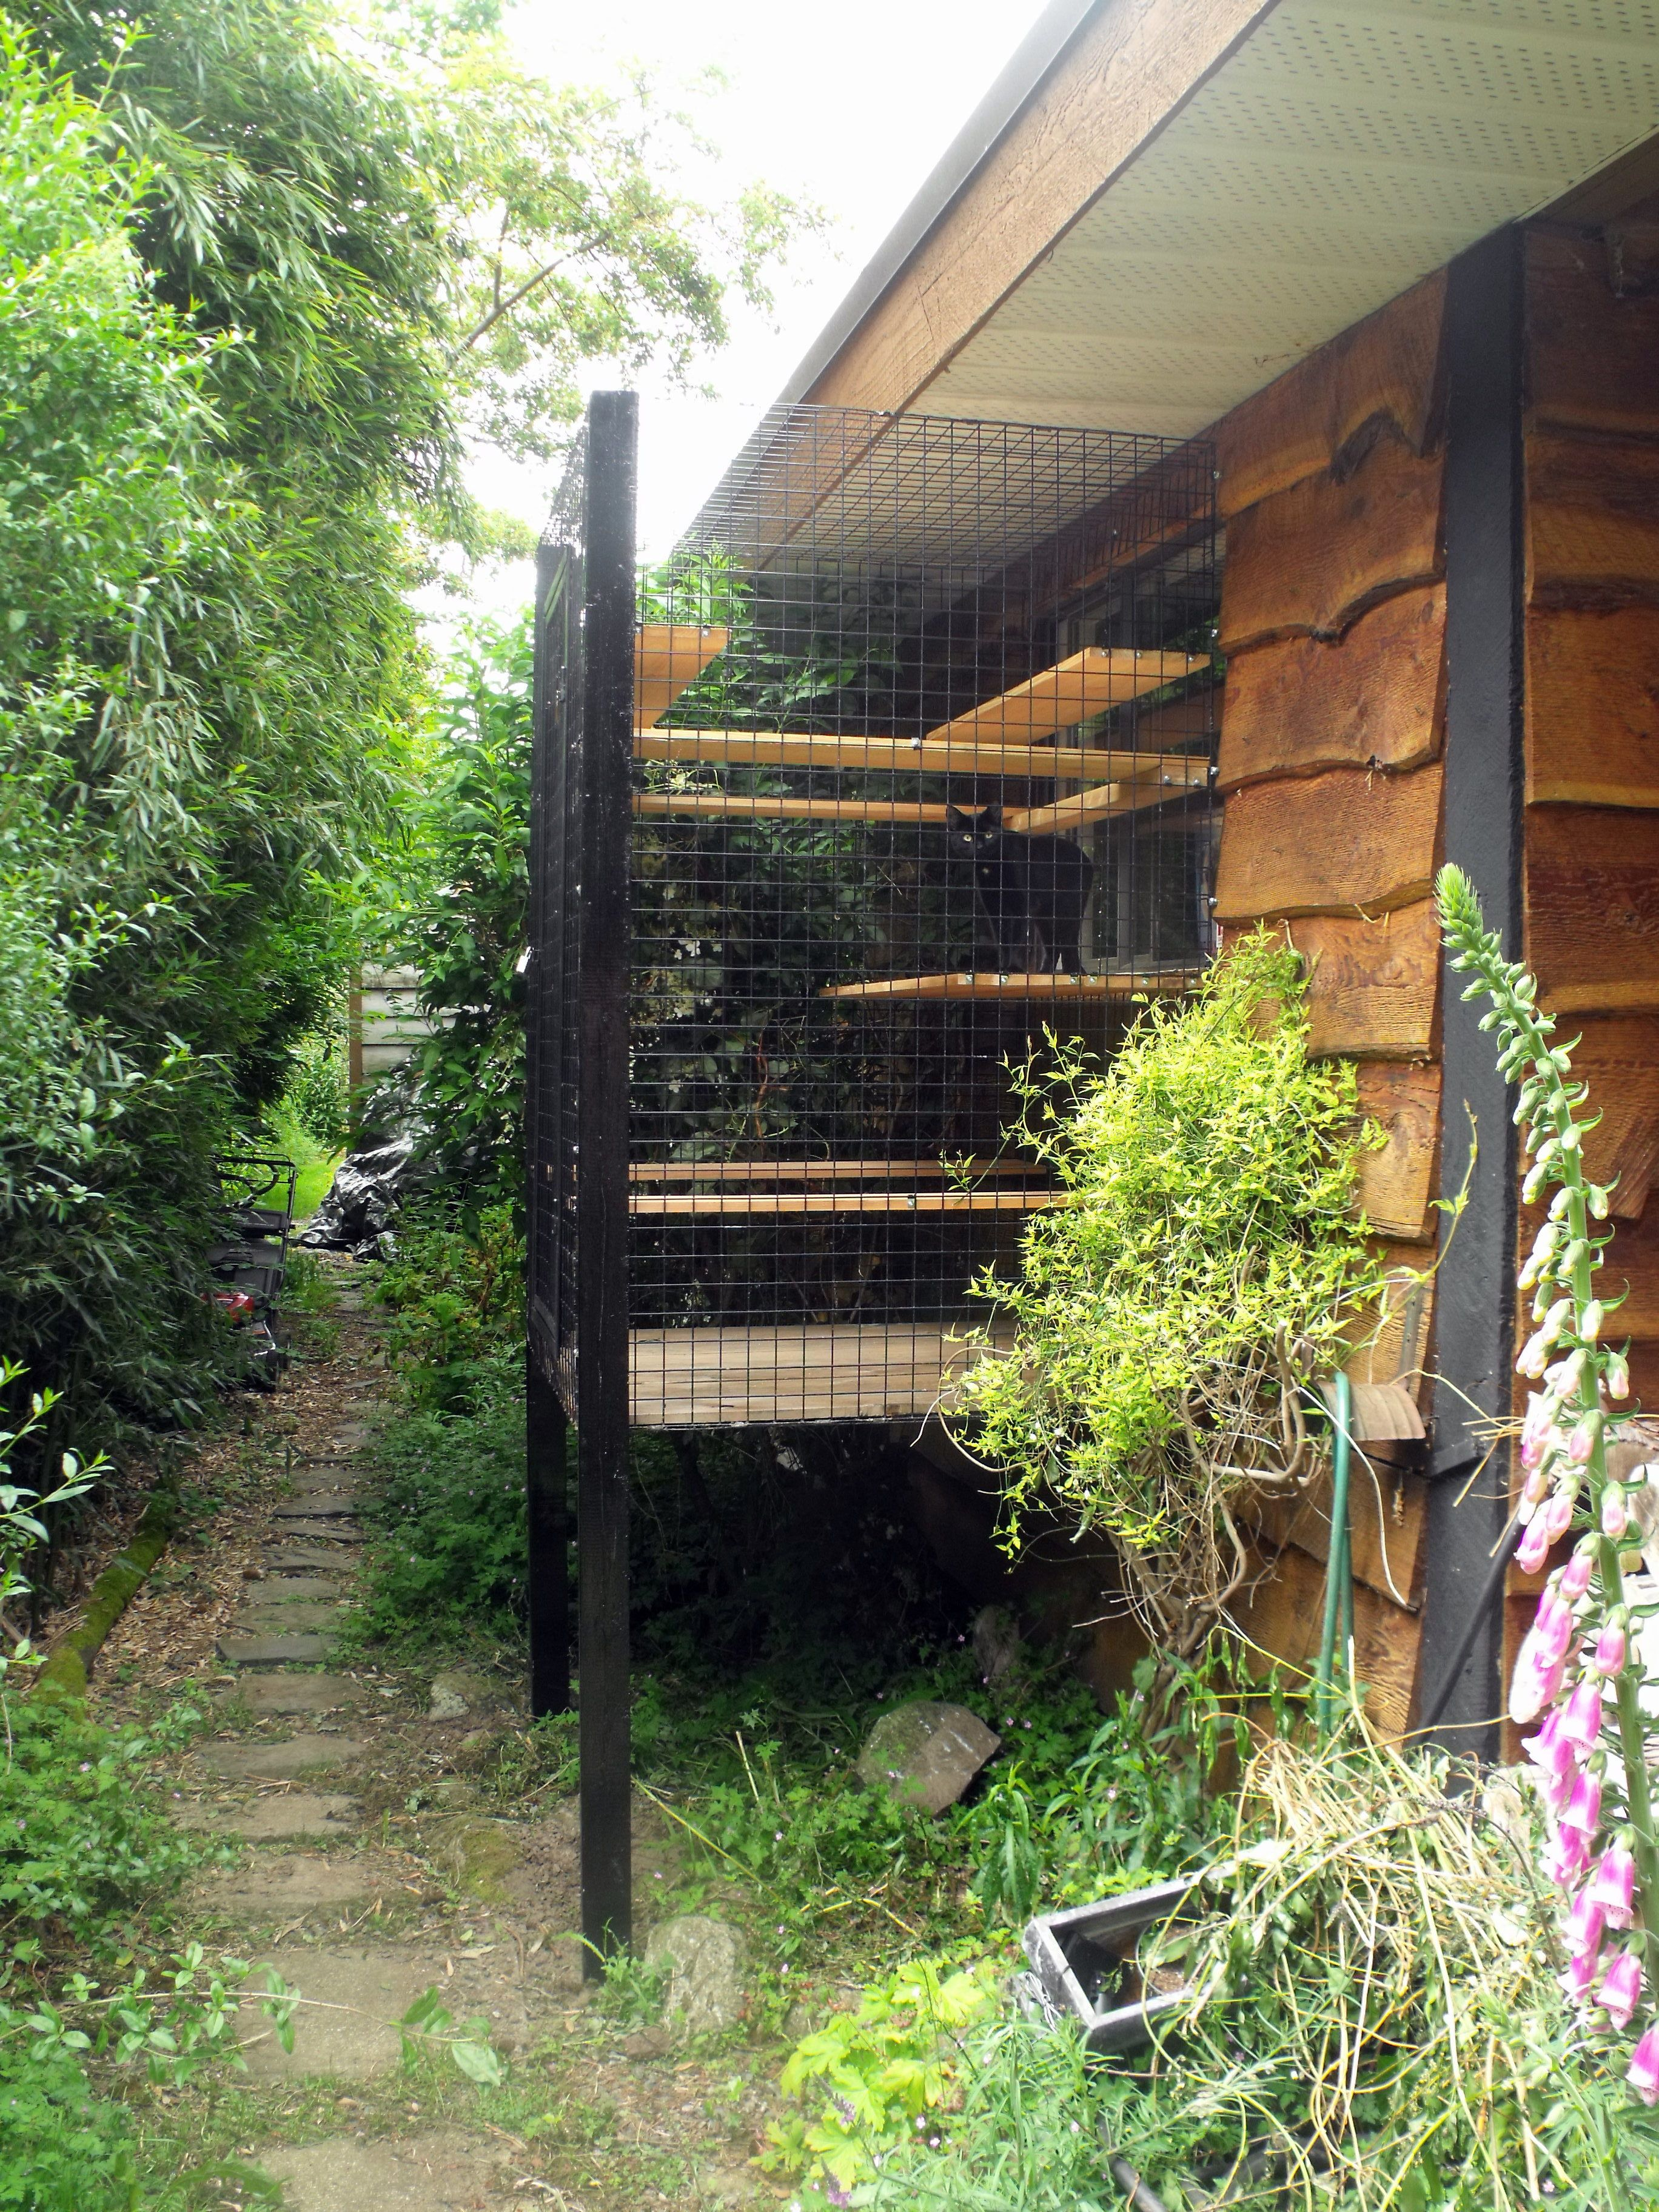 Attractive Outdoor Cat Enclosure Beautiful World Living Environments Www.abeautifulwor.